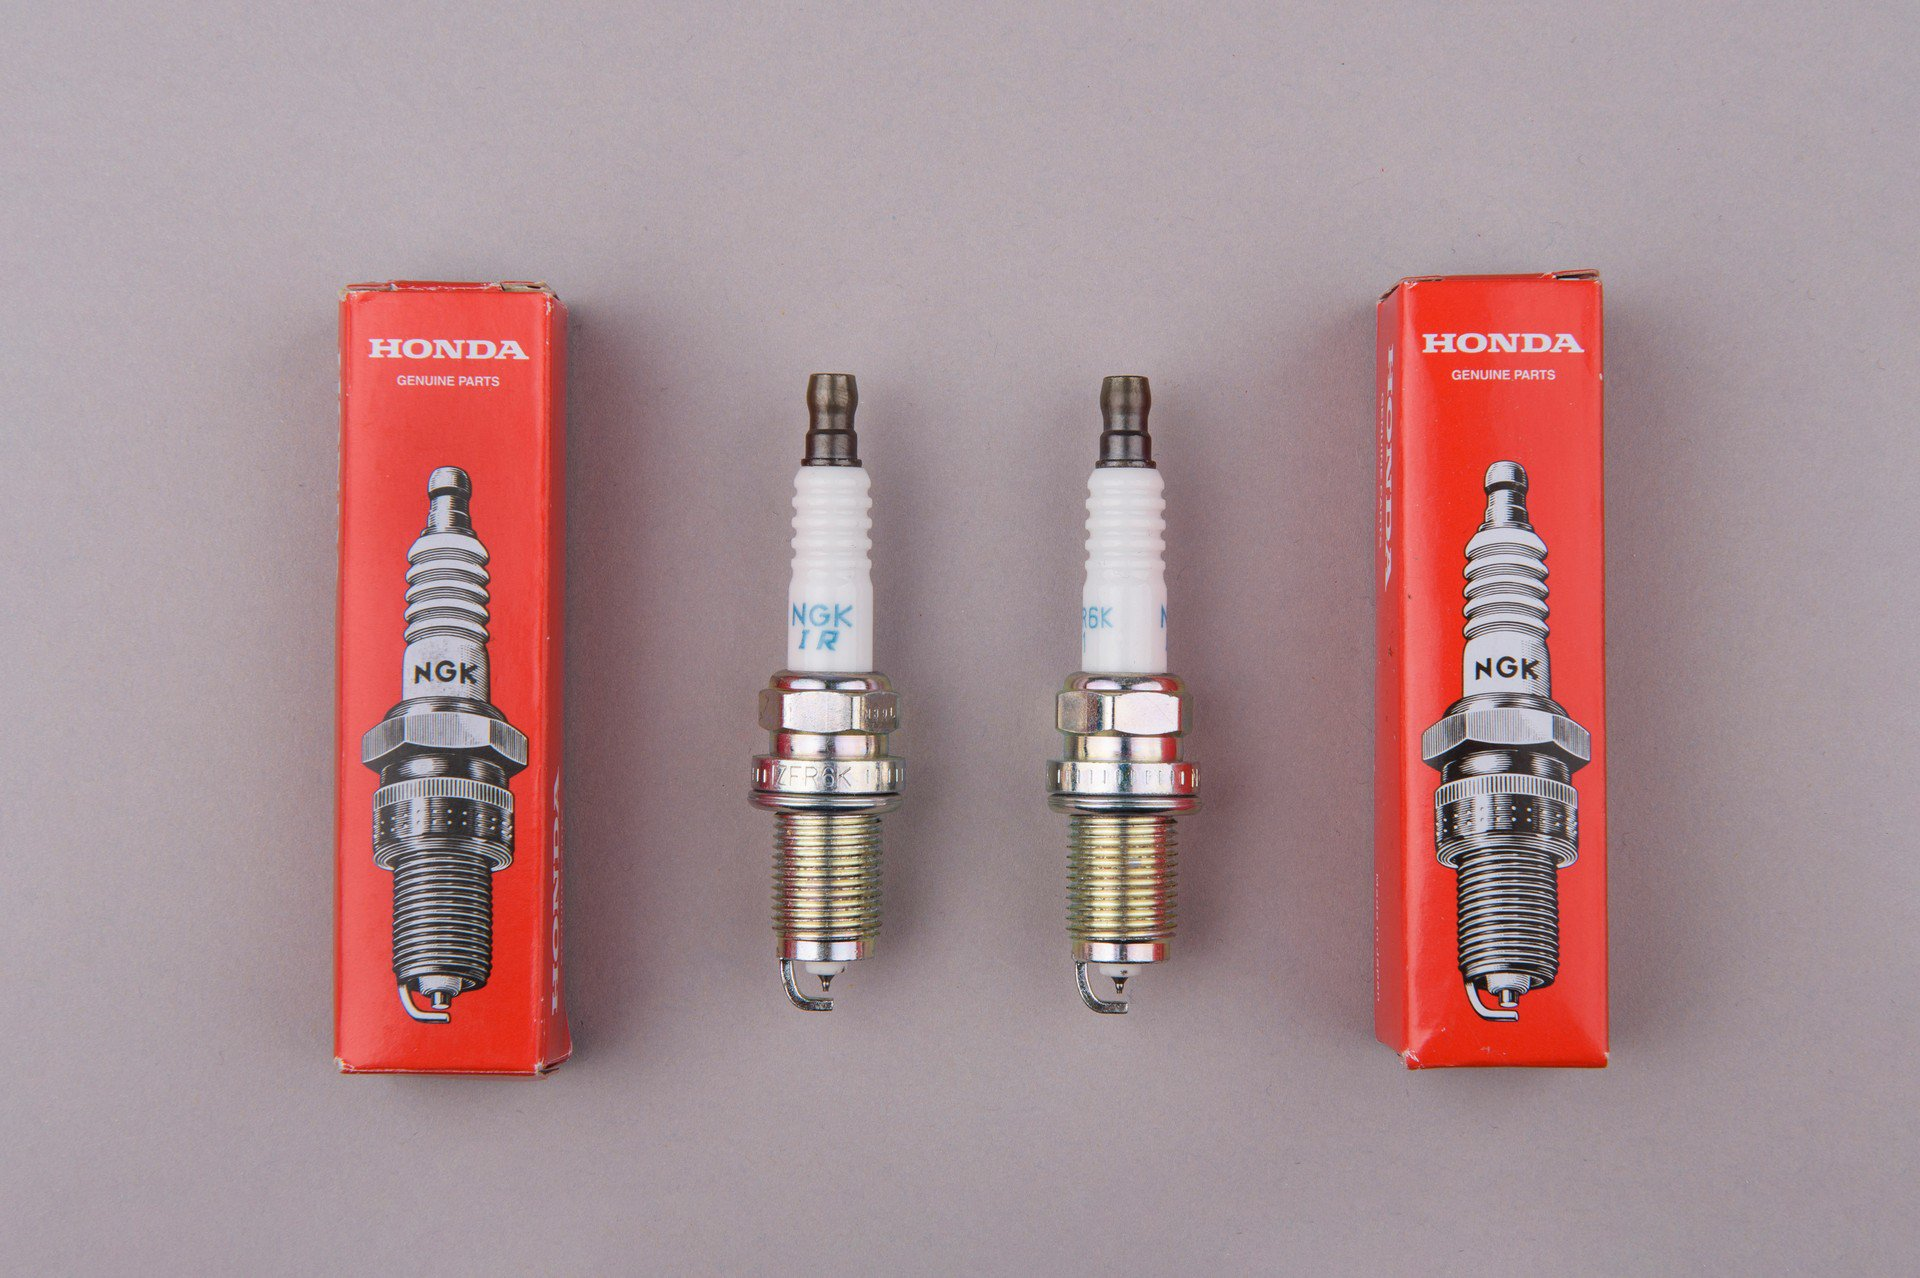 Spark-Plugs-Federal-Chamber-of-Automotive-Industries-3